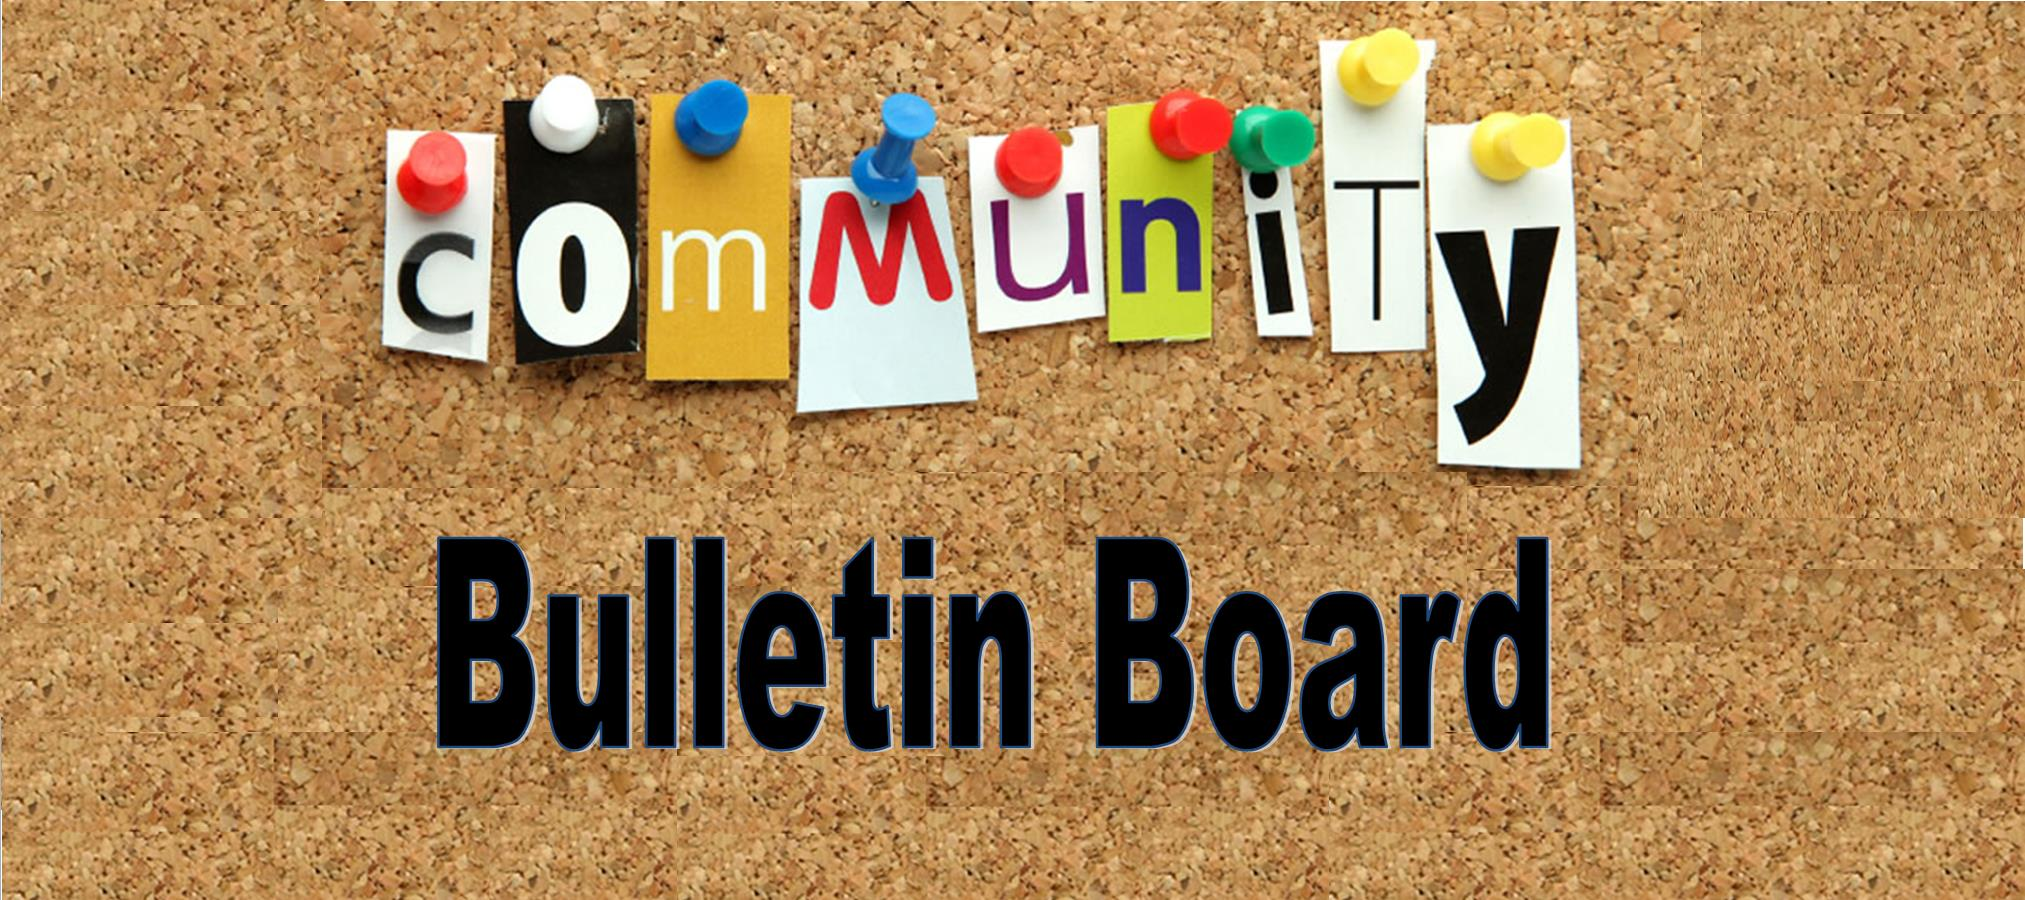 CommunityBulletinBoard (1)